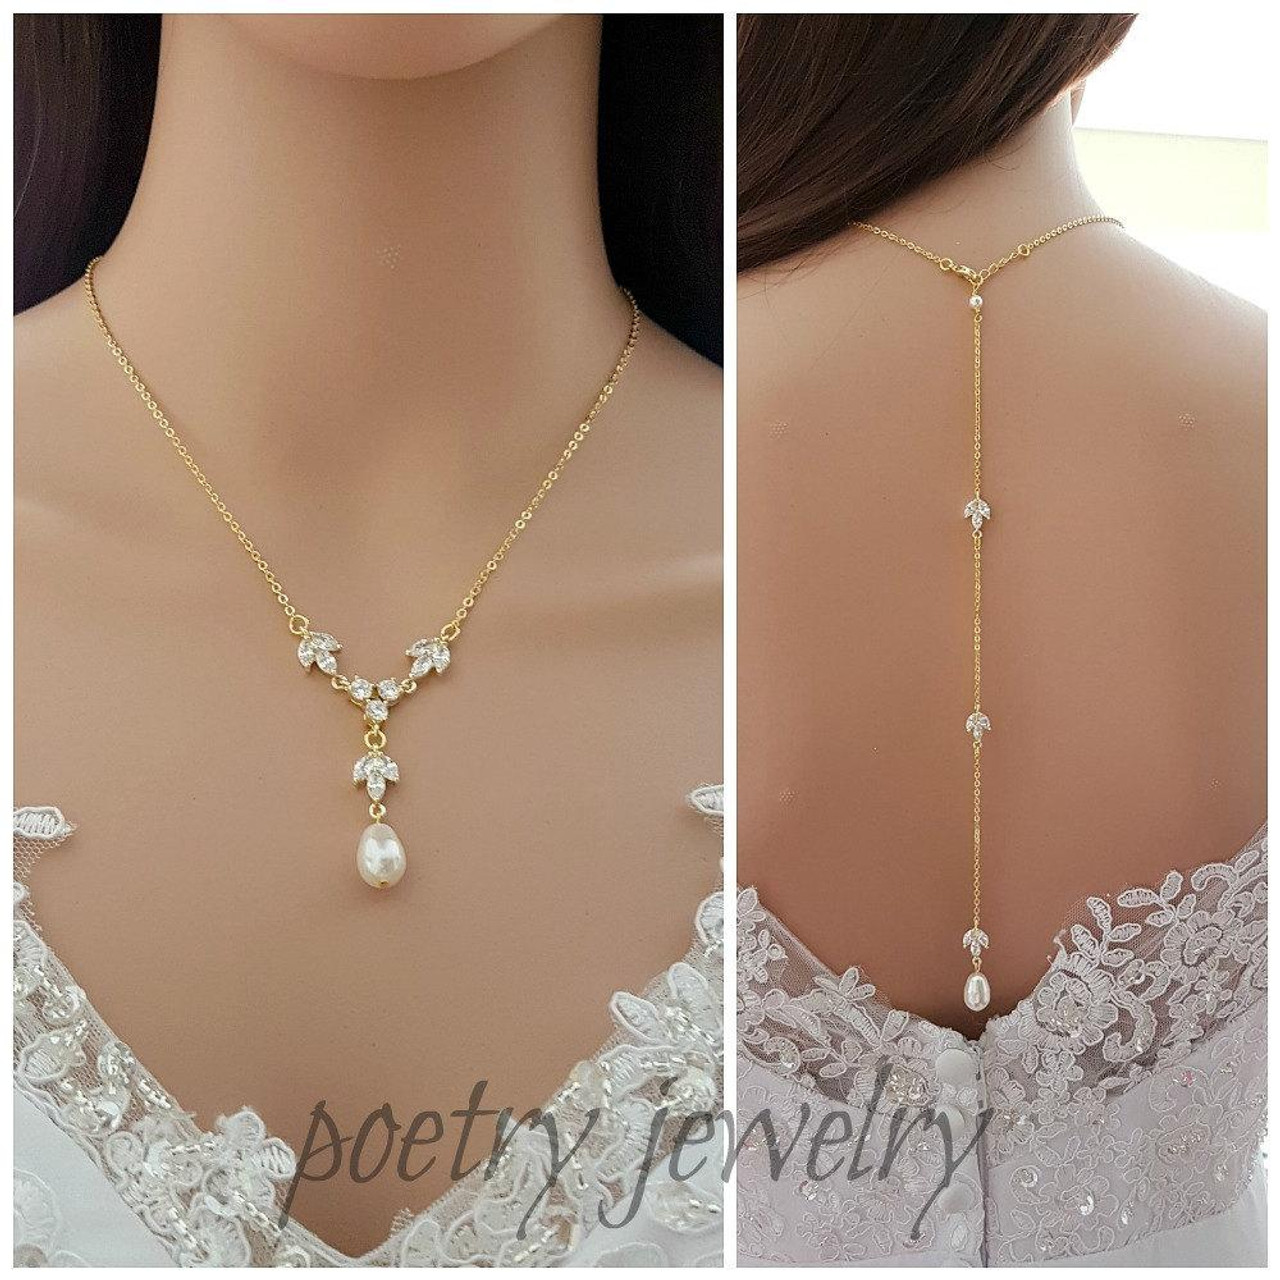 f2ccd15bbe36c Gold Back Drop Bridal Necklace, Pearl Crystal Necklace, Wedding Necklace,  Gold Backdrop Necklace, Simple Necklace, Wedding Jewelry, Leila